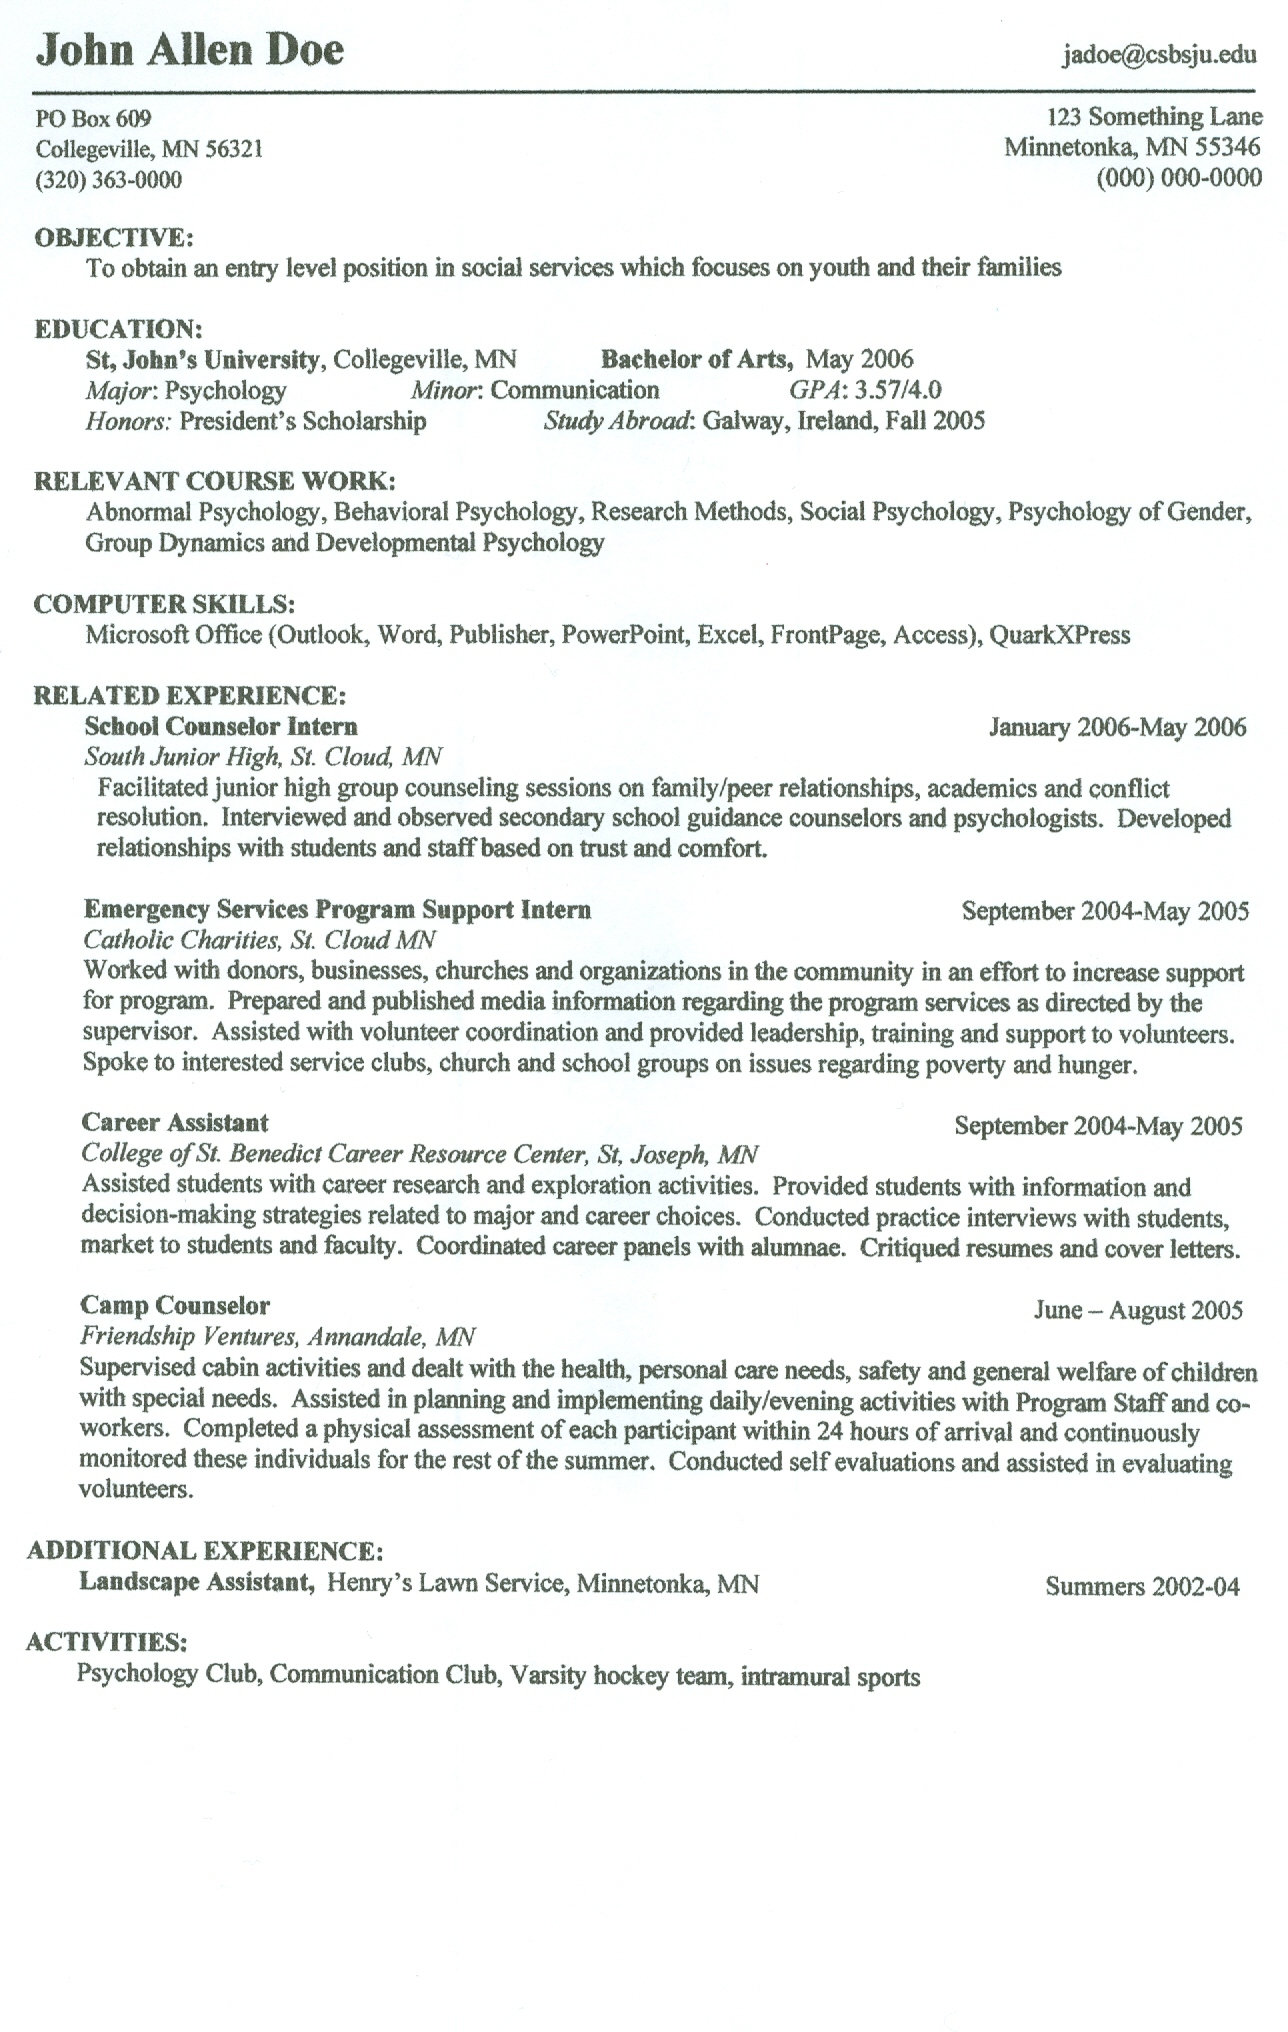 show me an example of a job resume